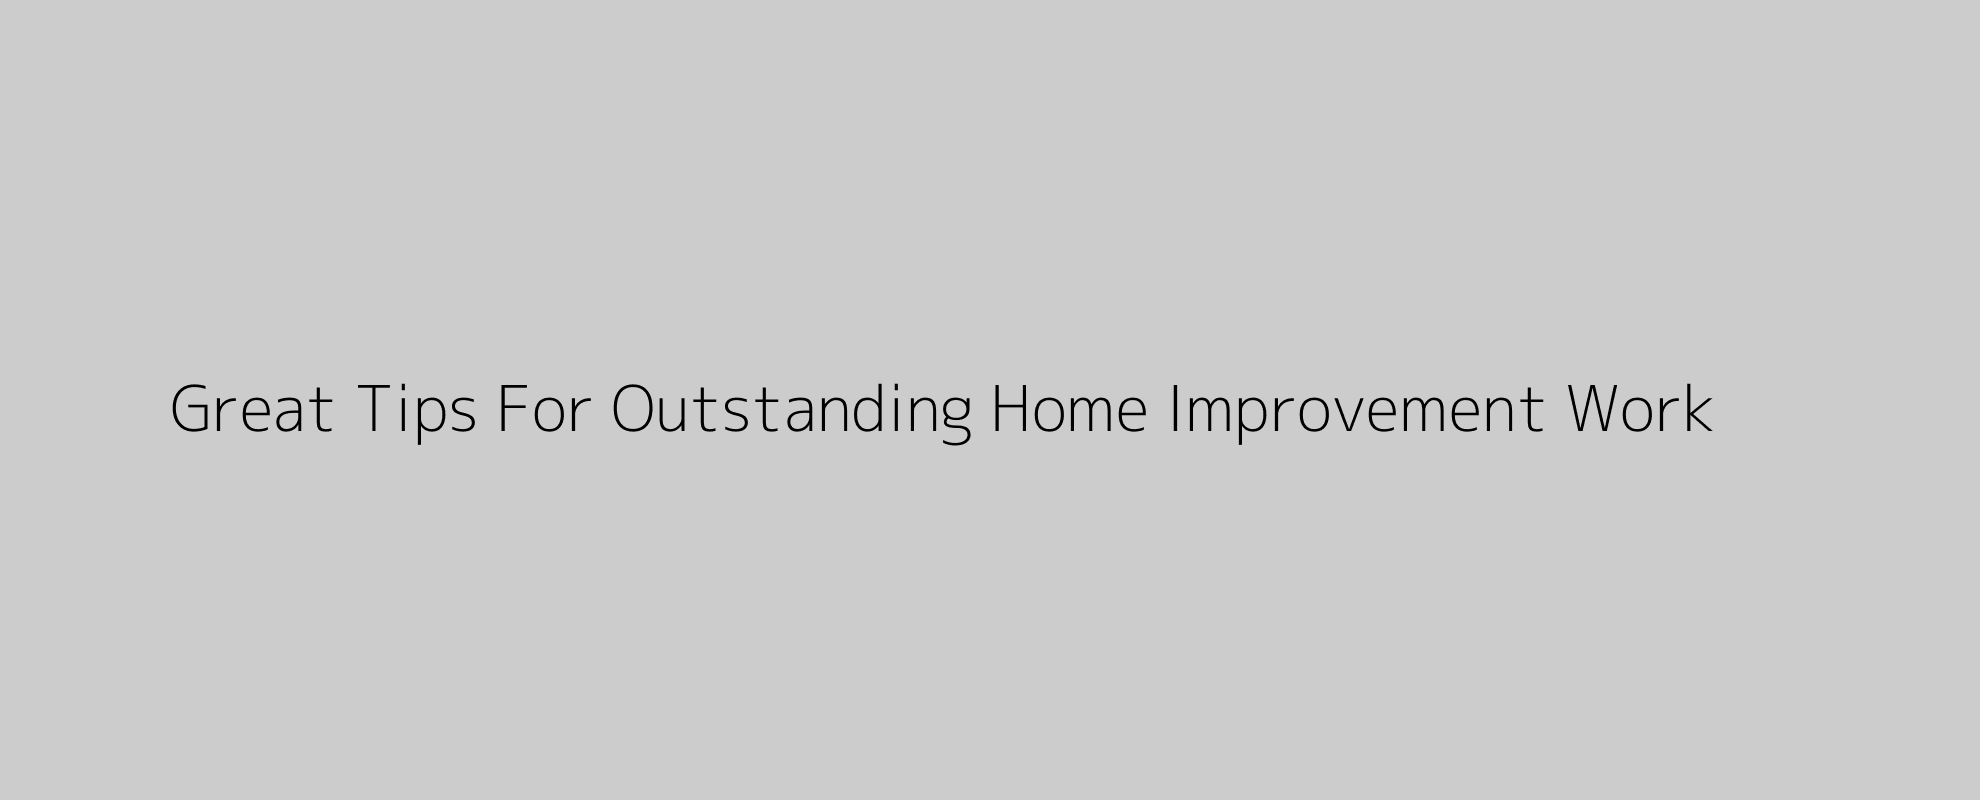 Great Tips For Outstanding Home Improvement Work